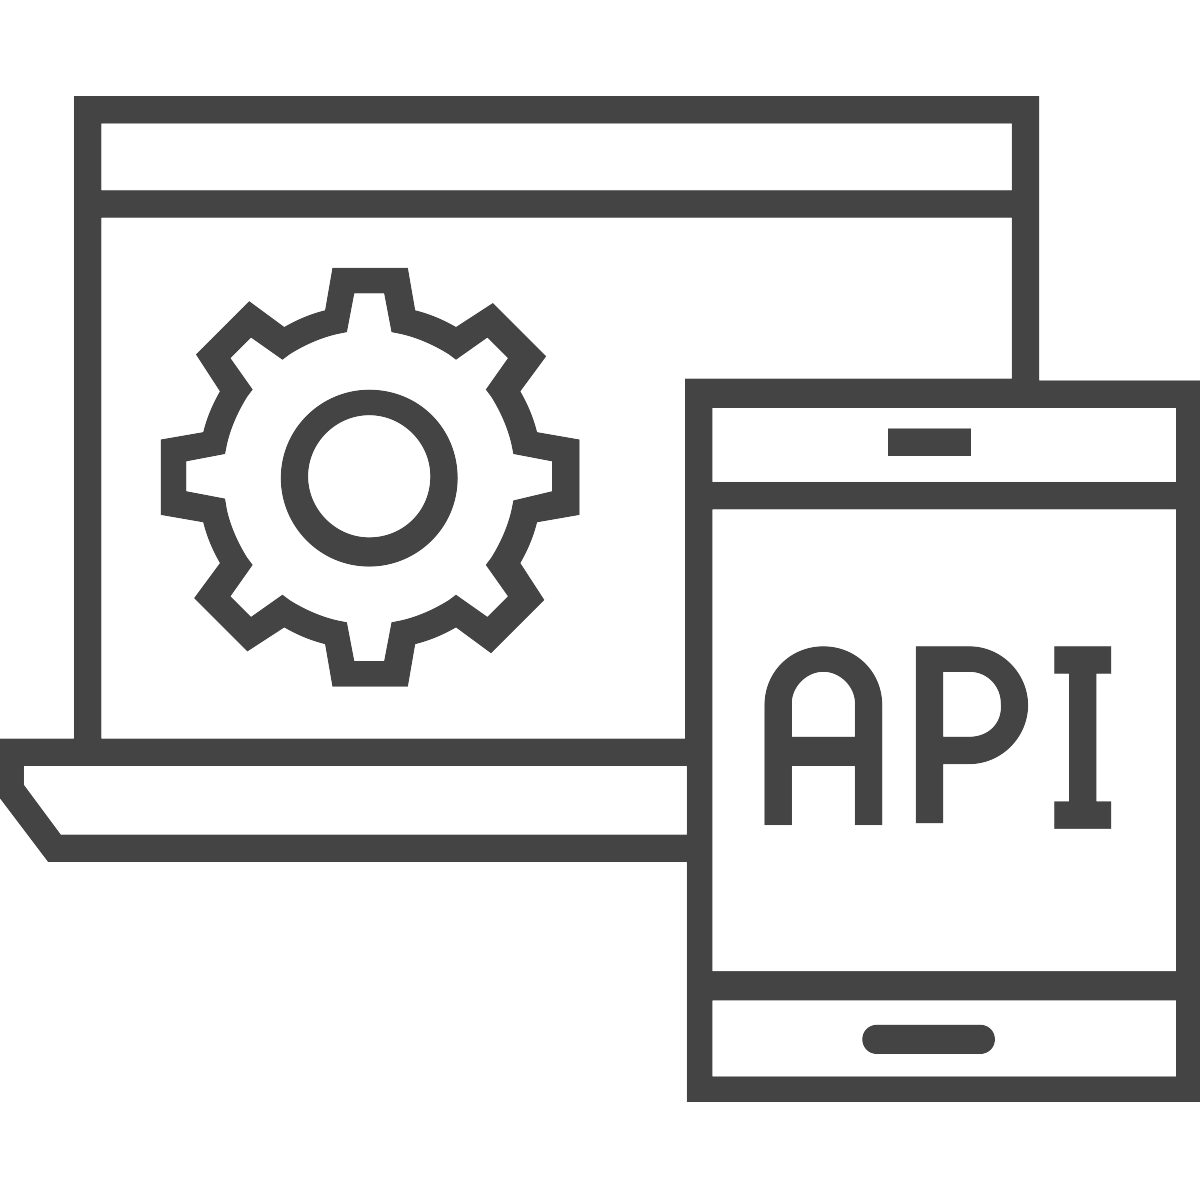 API Integrations - Utilize the interoperability power of a RESTful API to execute your measures and review your results any time you'd like.Excel, CSV, XML or JSON file formats that can be easily consumed by down stream systems such as BI Dashboards, Enterprise Data Warehouses, Care Management Systems, Electronic Health Records or other custom applications within your health care ecosystem.